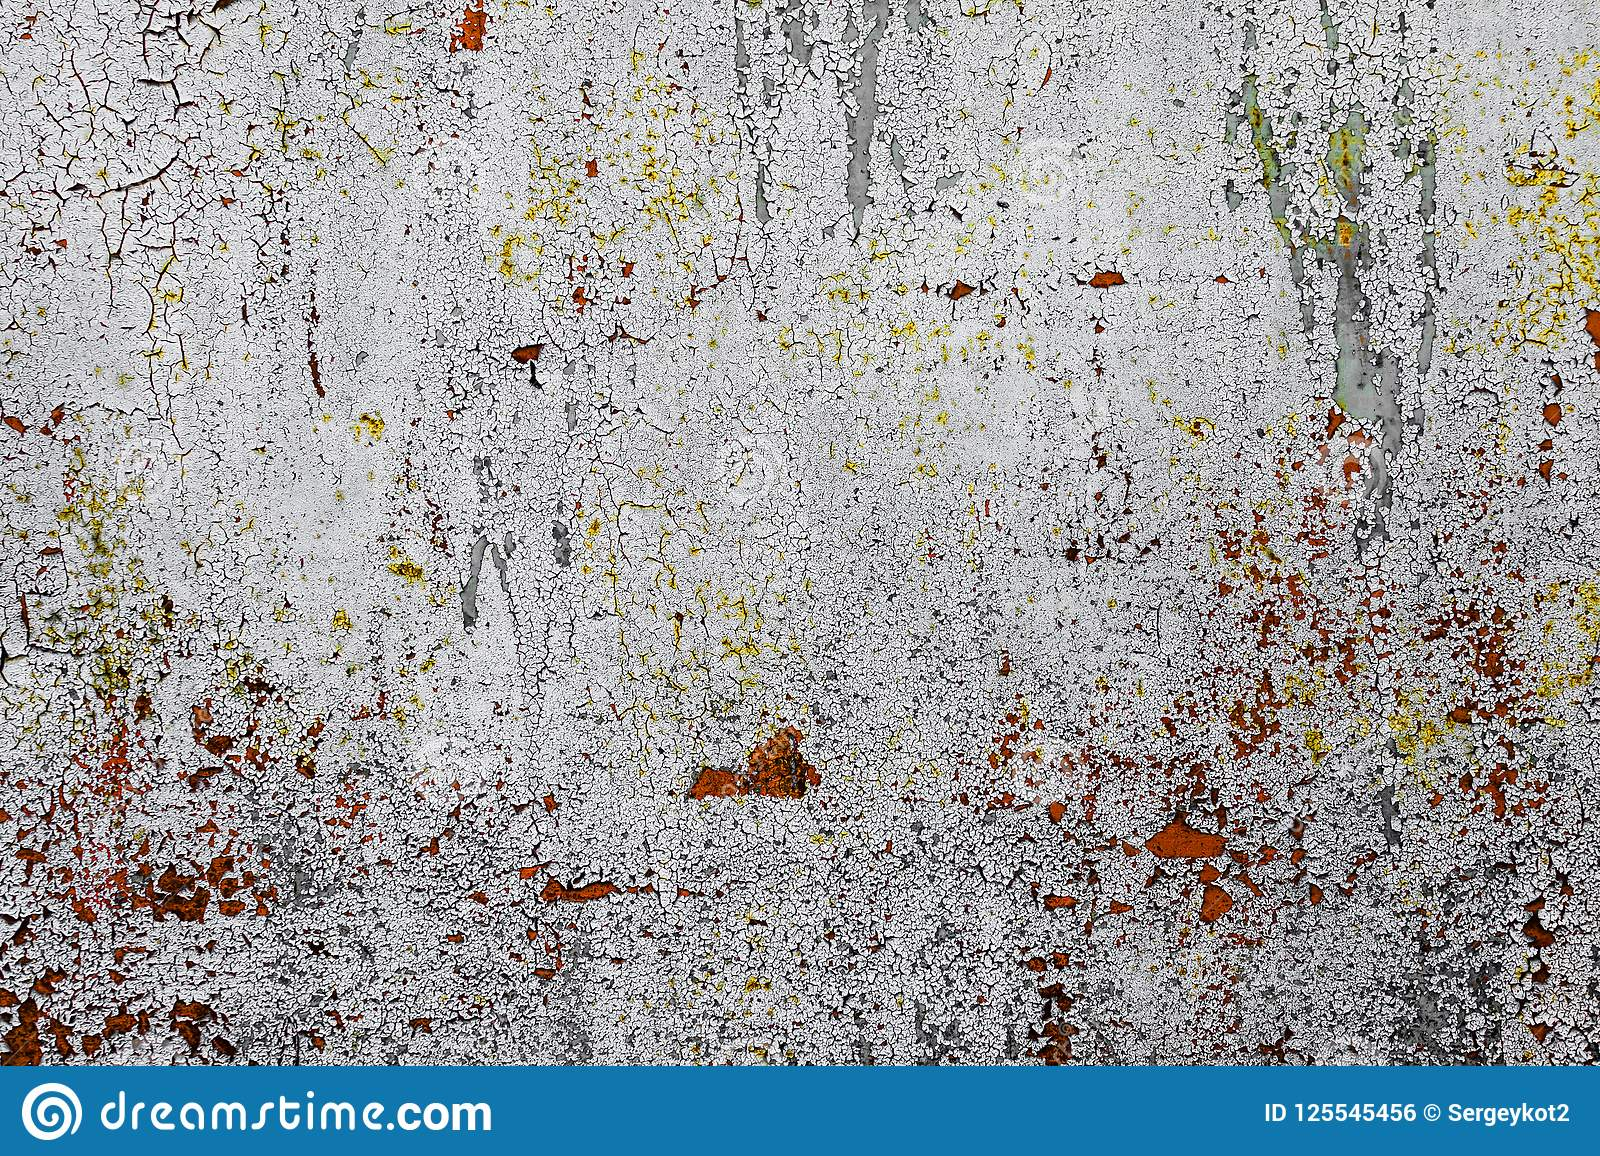 Grunge Rusted Metal Texture Gray Background Old Iron Panel Desktop